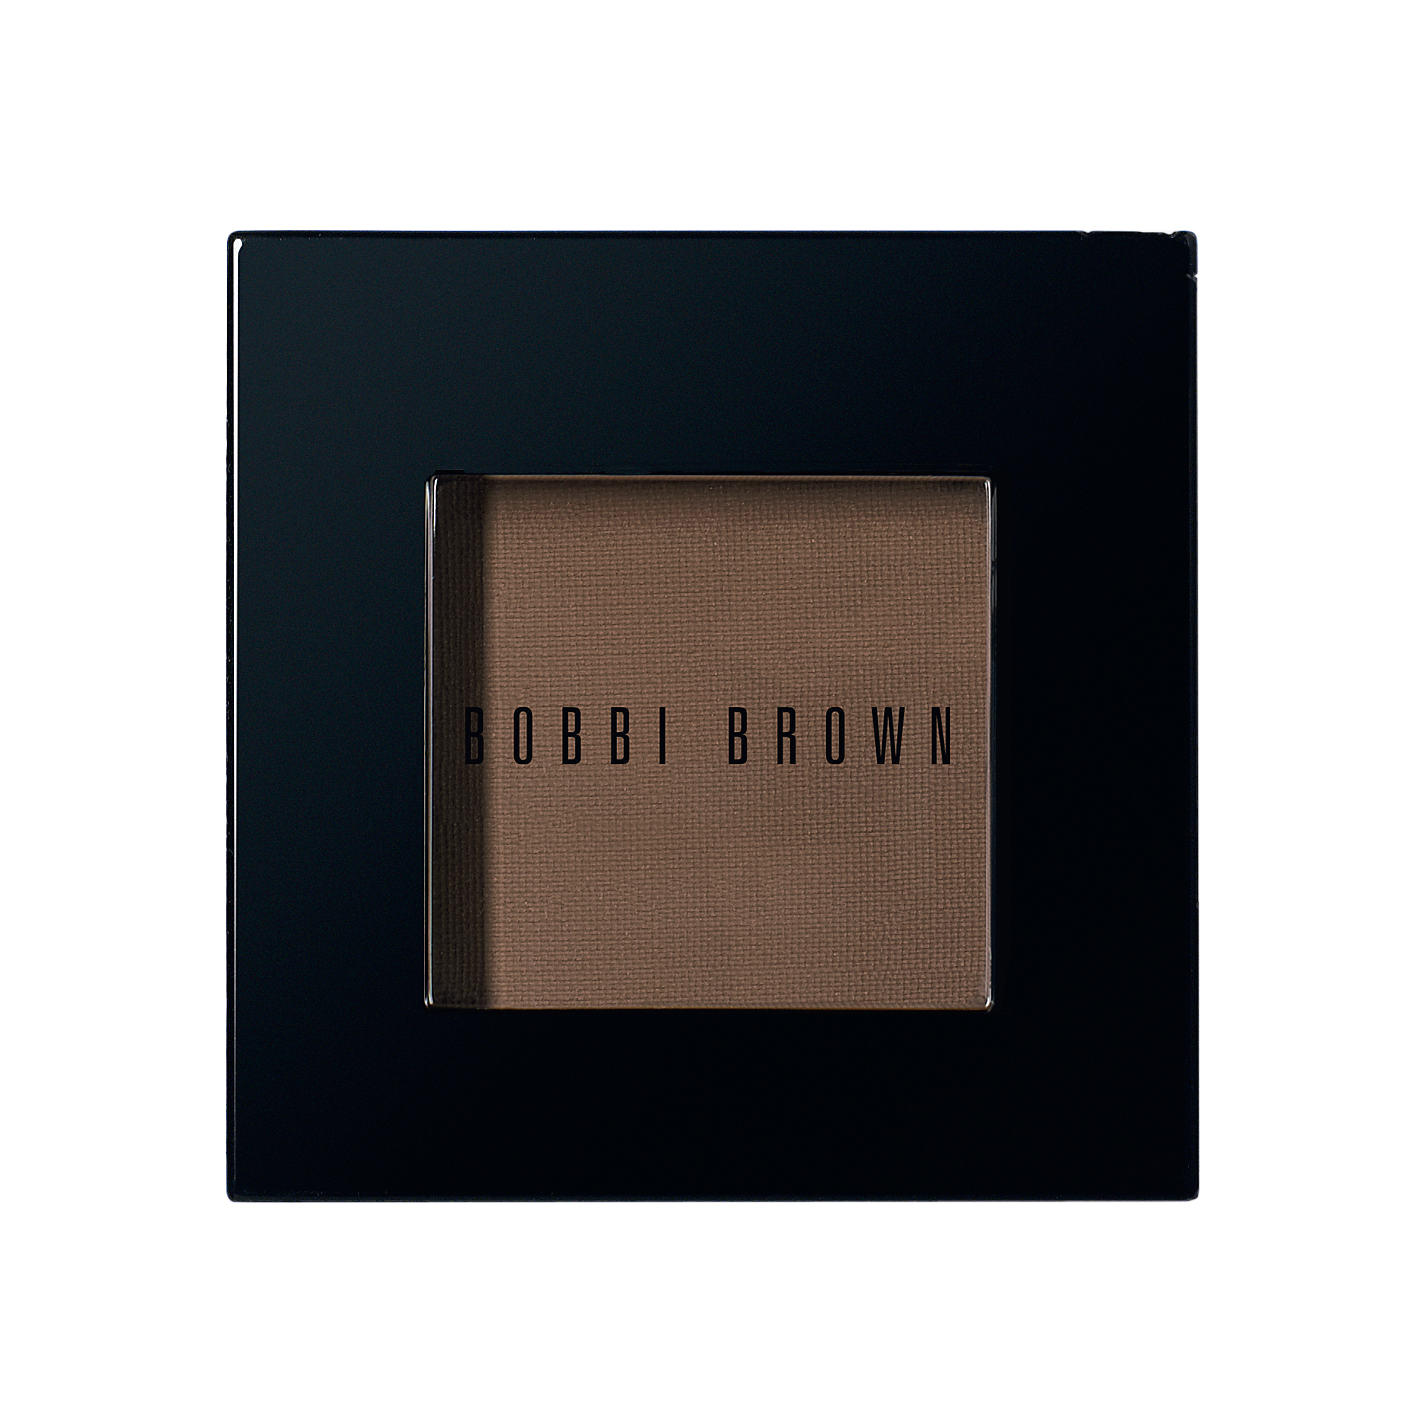 Bobbi Brown Eyeshadow Camel 5